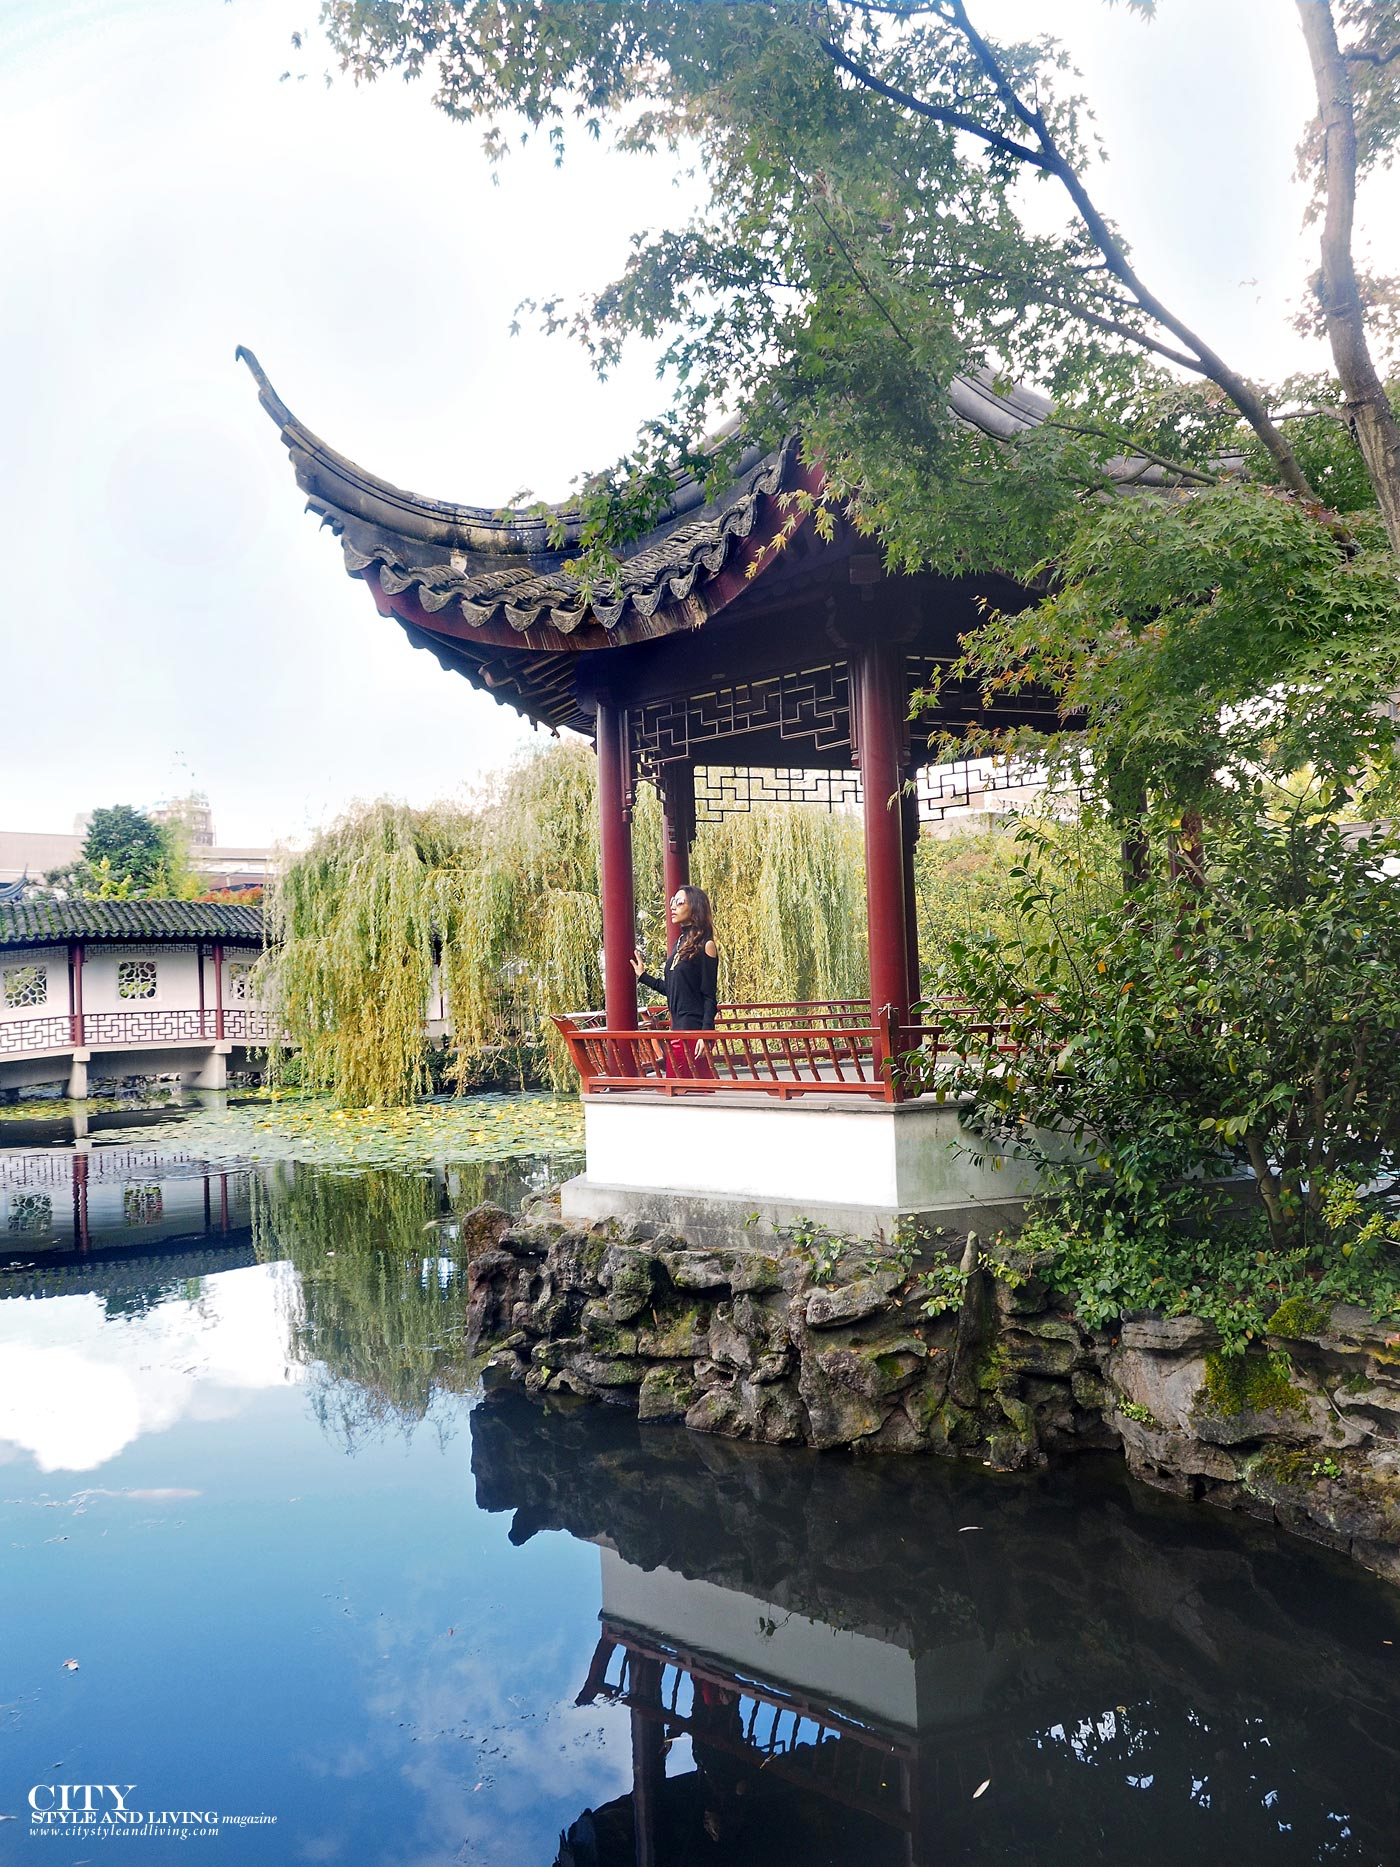 City Style and Living The Editors Notebook style blogger Shivana M  at Dr. Sat Yuen Sen Chinese Gardens in Vancouver wearing a cashmere top and red cropped pants walking pagoda by water